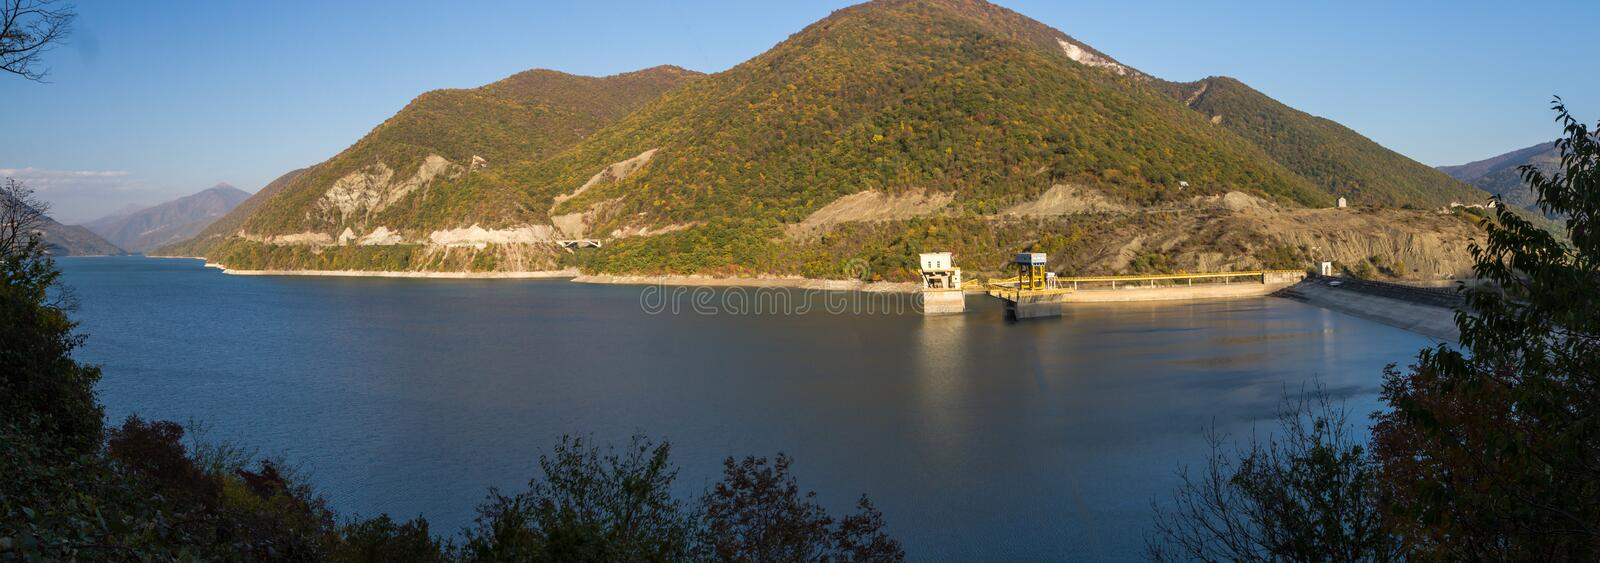 Landscapes of the water and mountains Zhinval water reservoir, G royalty free stock photography